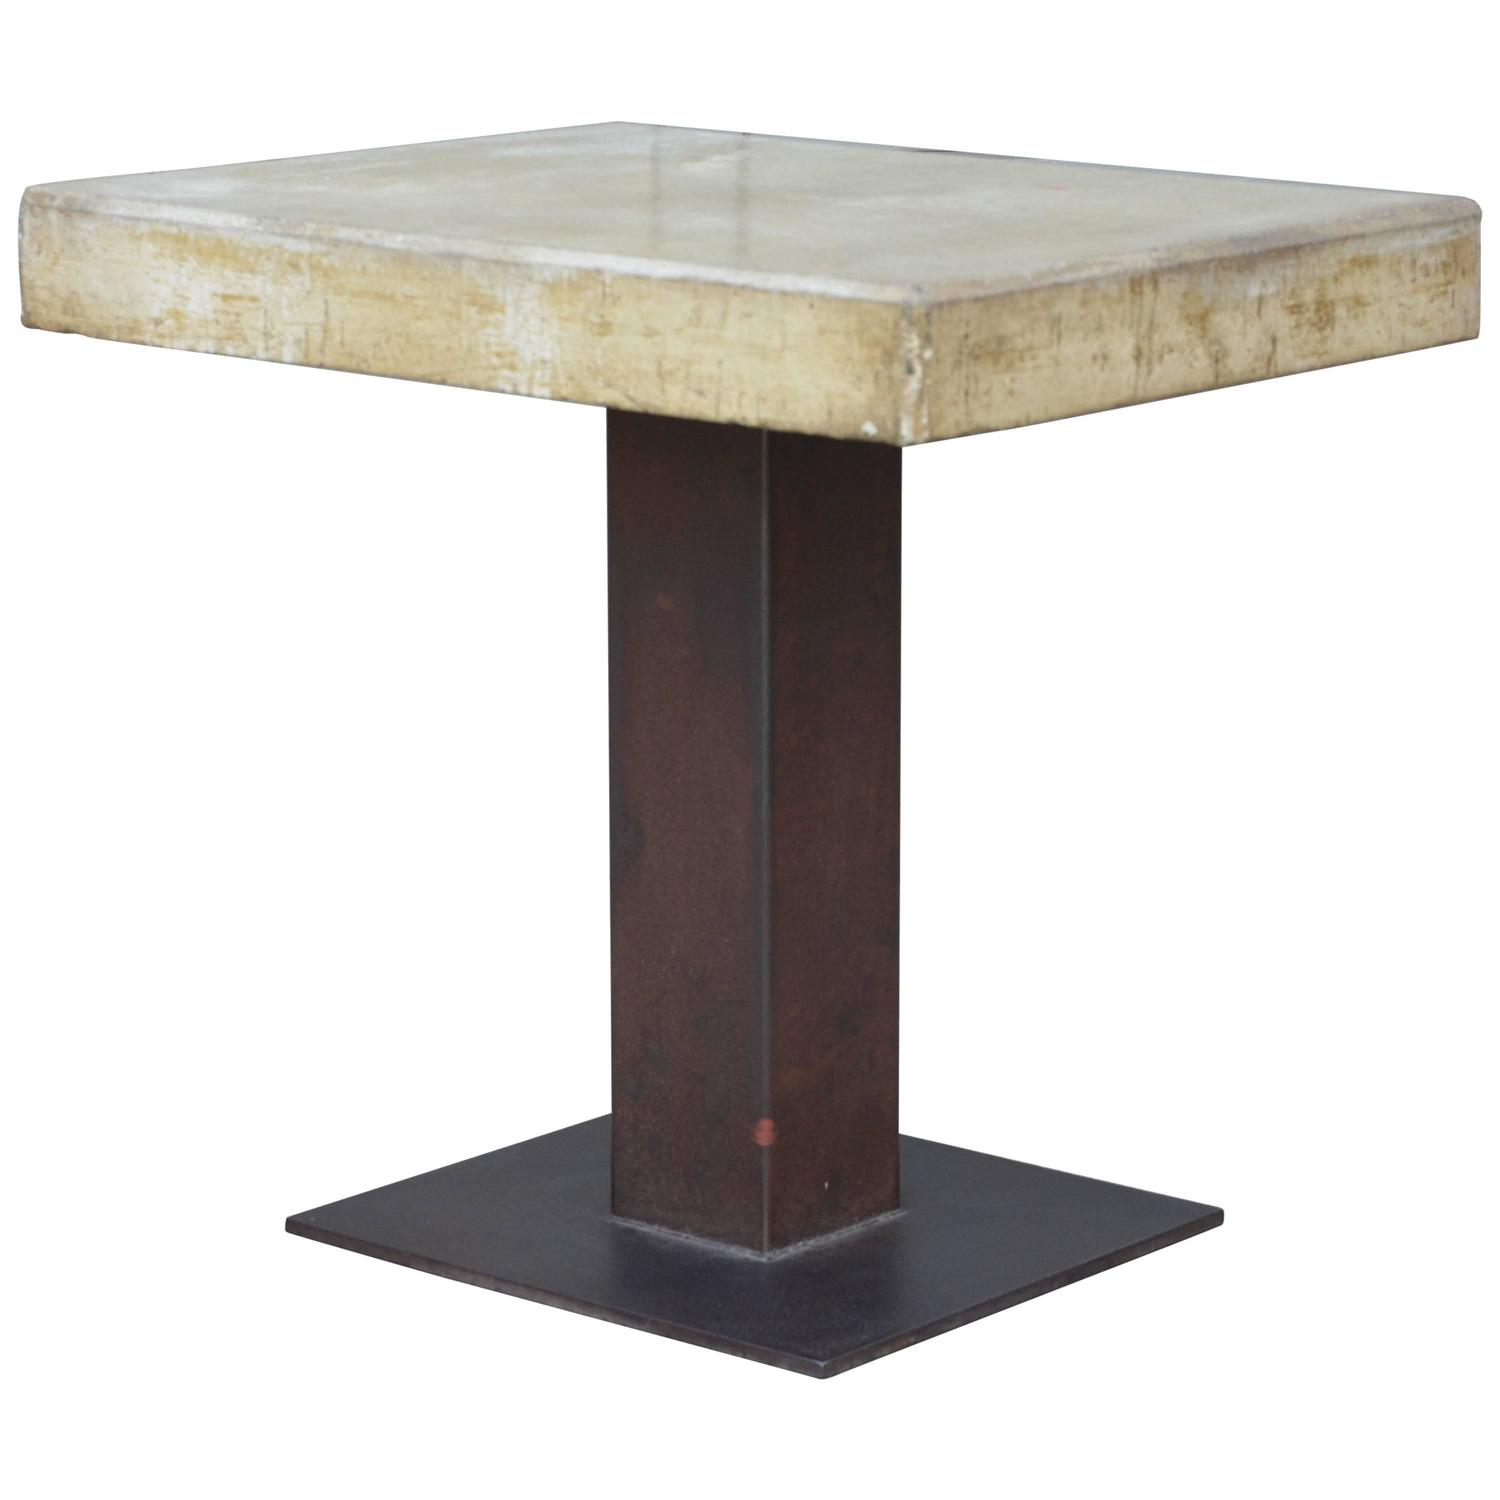 One Of A Kind Brutalist Polished Concrete Table For Sale At 1stdibs